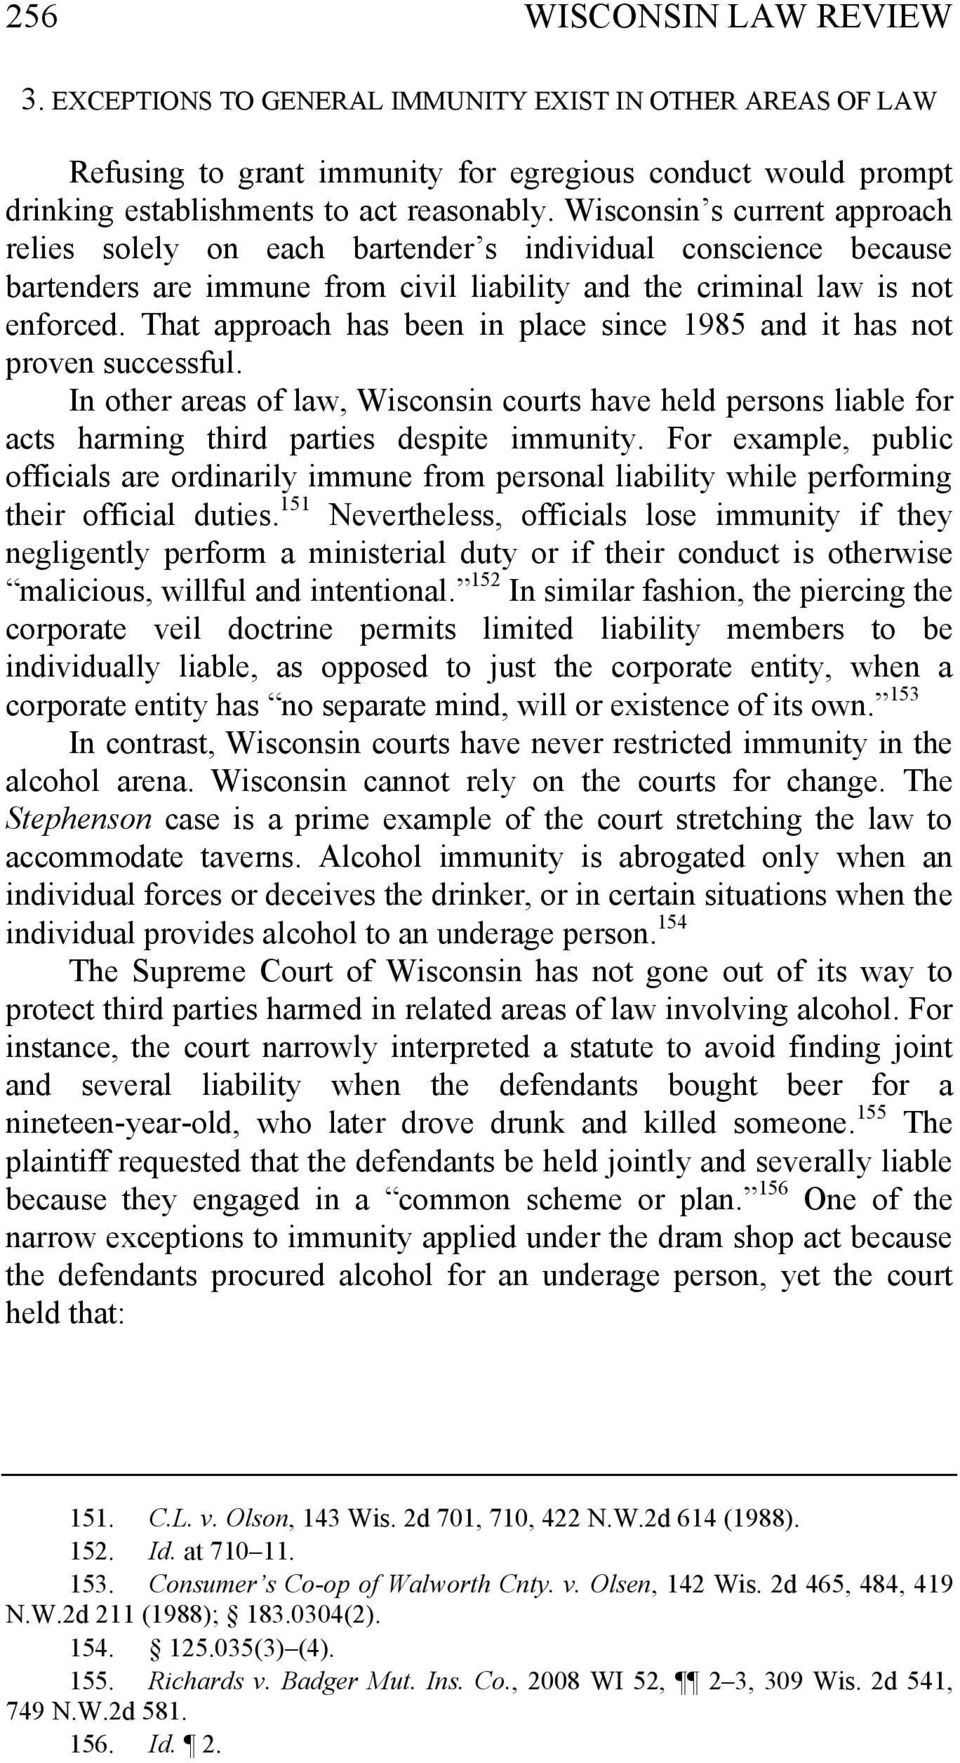 That approach has been in place since 1985 and it has not proven successful. In other areas of law, Wisconsin courts have held persons liable for acts harming third parties despite immunity.